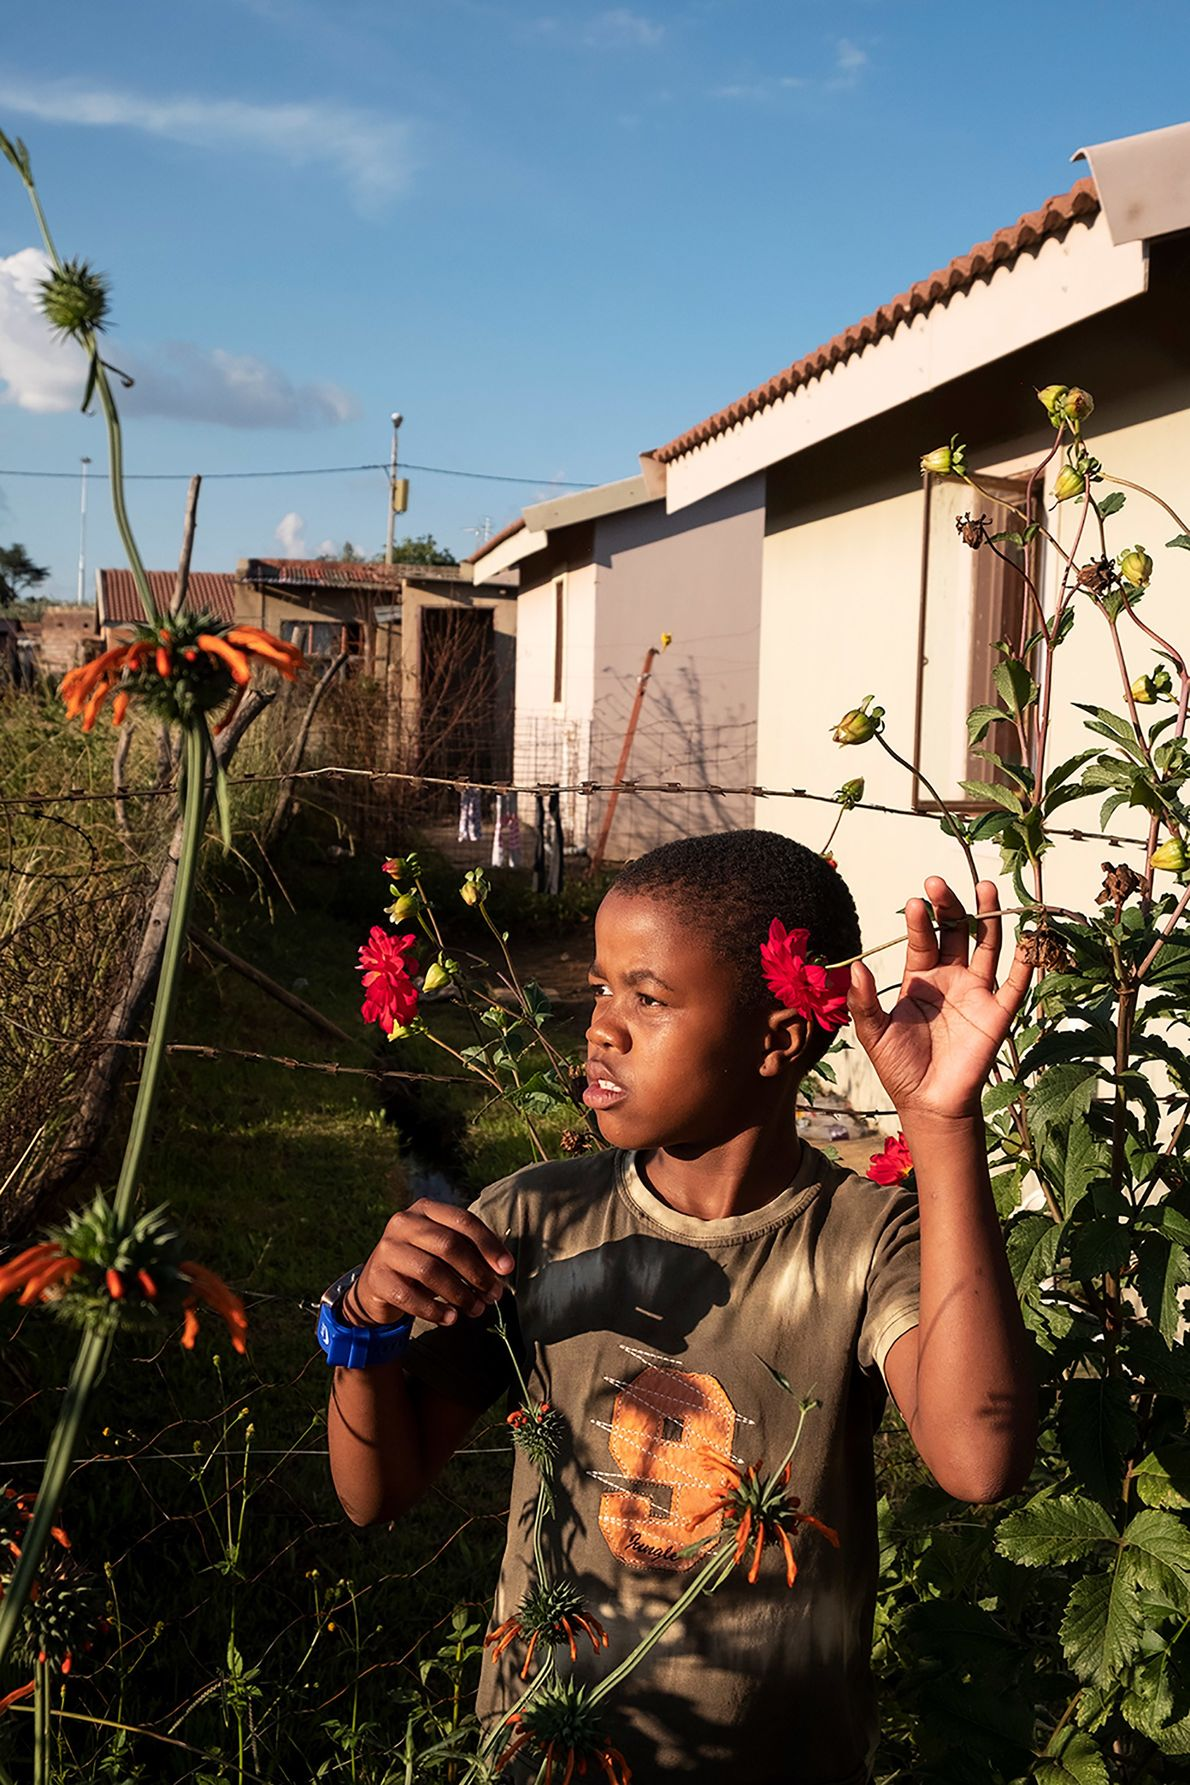 A young boy in a Johannesburg, South Africa, township finds beauty in the wildflowers along a ...